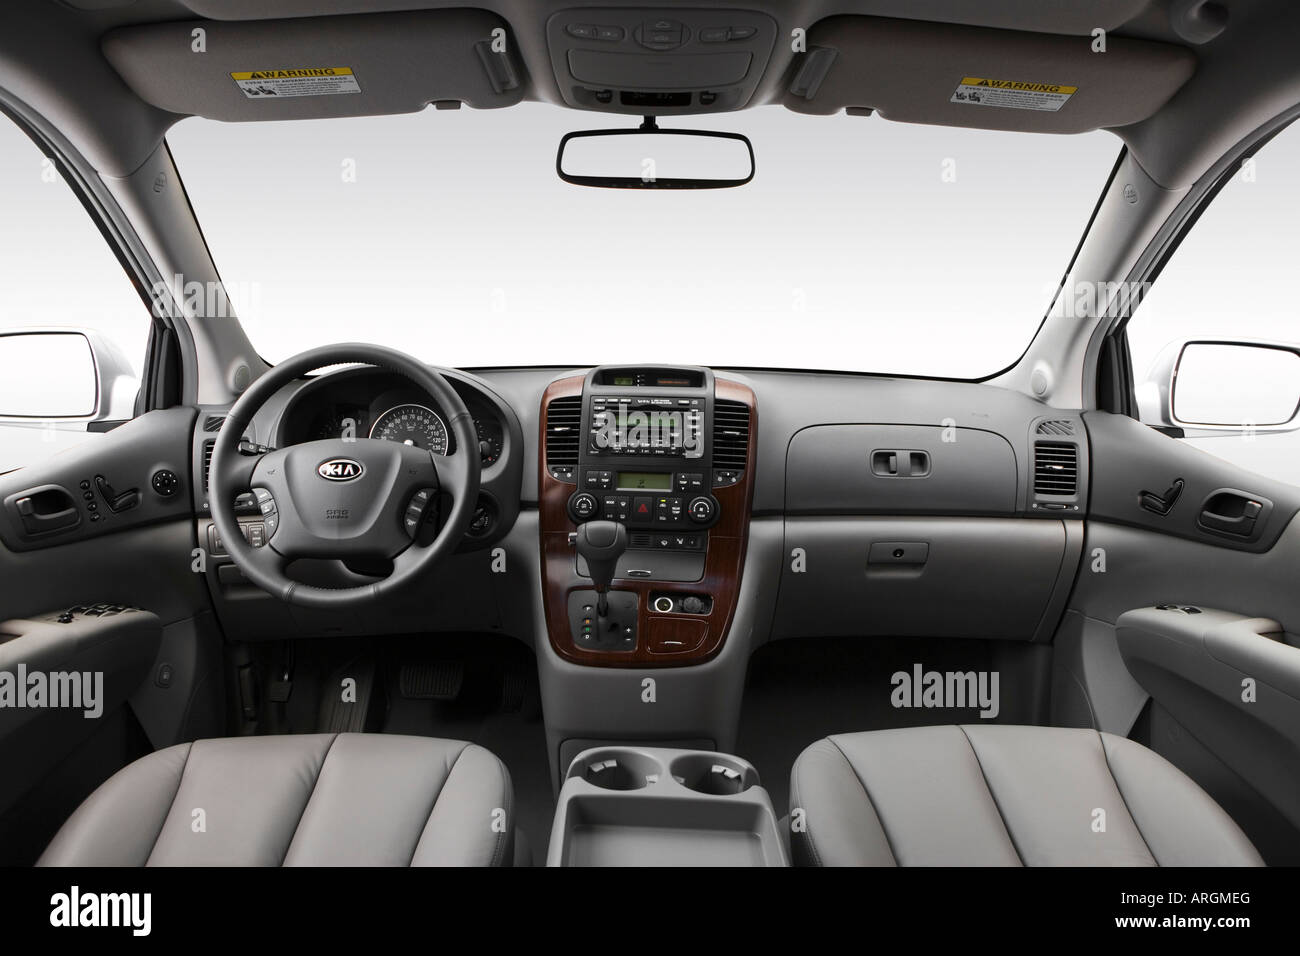 hight resolution of 2007 kia sedona ex in silver dashboard center console gear shifter view